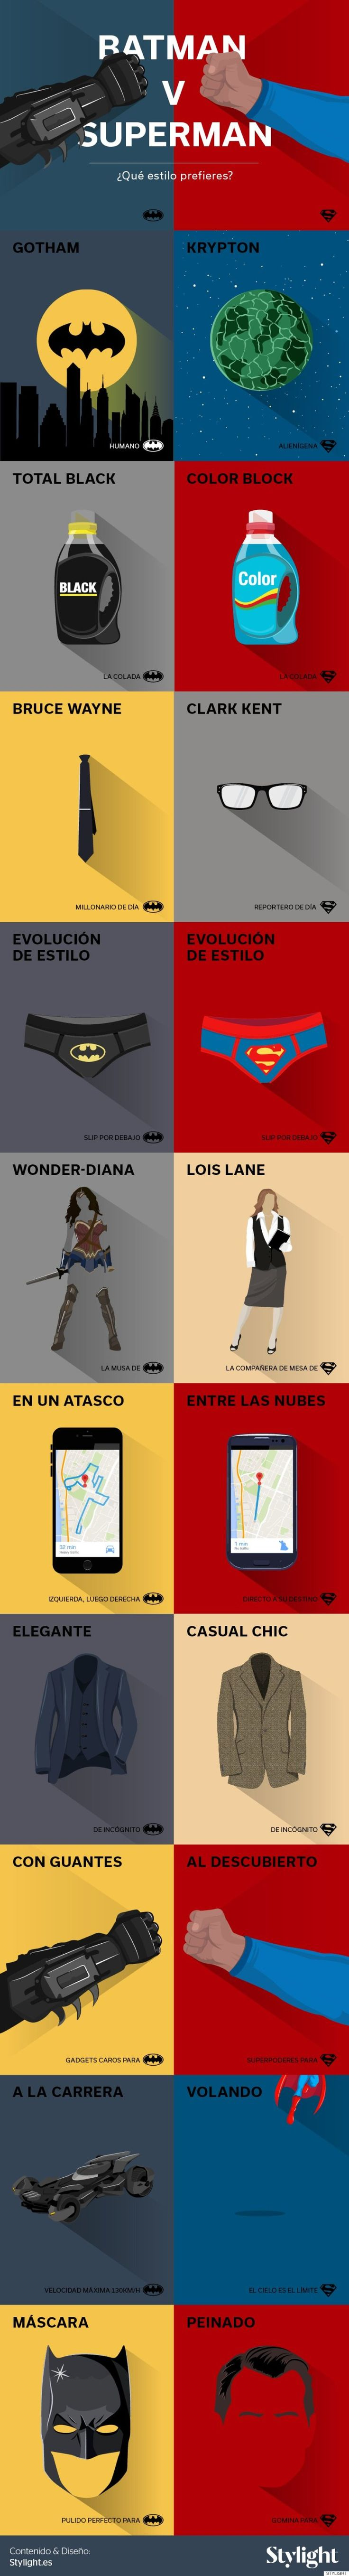 Batman vs. Superman: la batalla de estilo definitiva (INFOGRAFÍA)